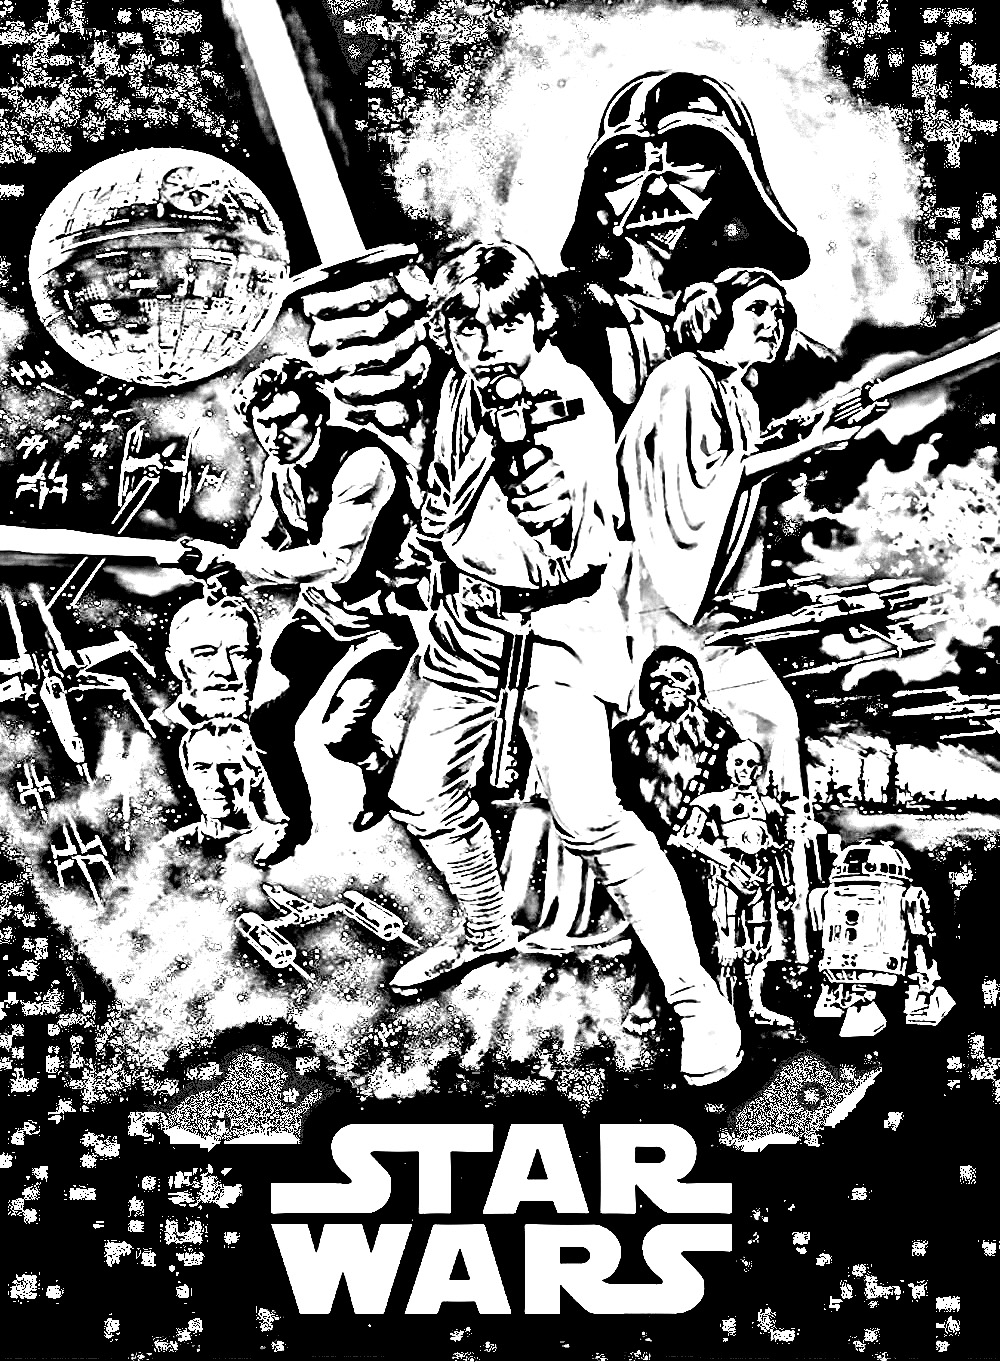 Movie star wars episode 4 Movies Adult Coloring Pages